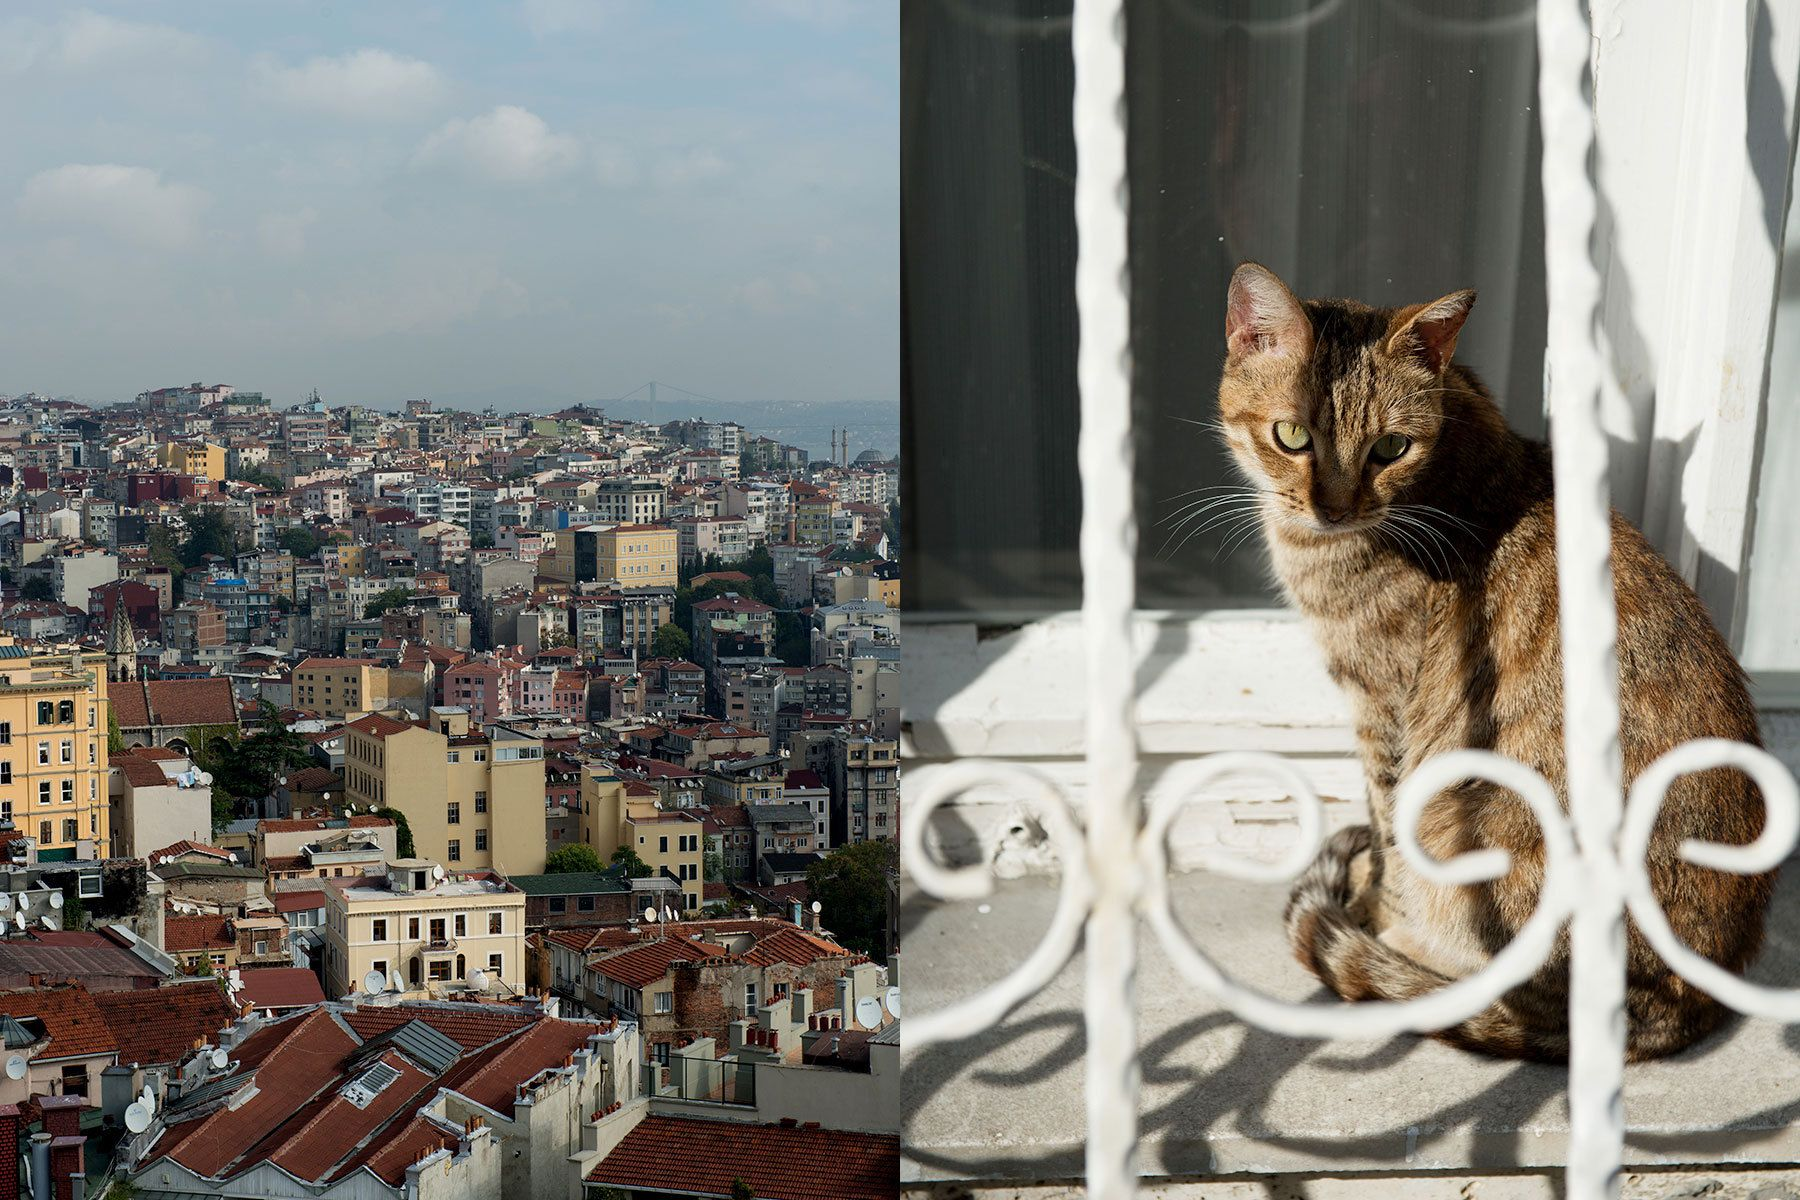 1istanbul_city_and_cat.jpg